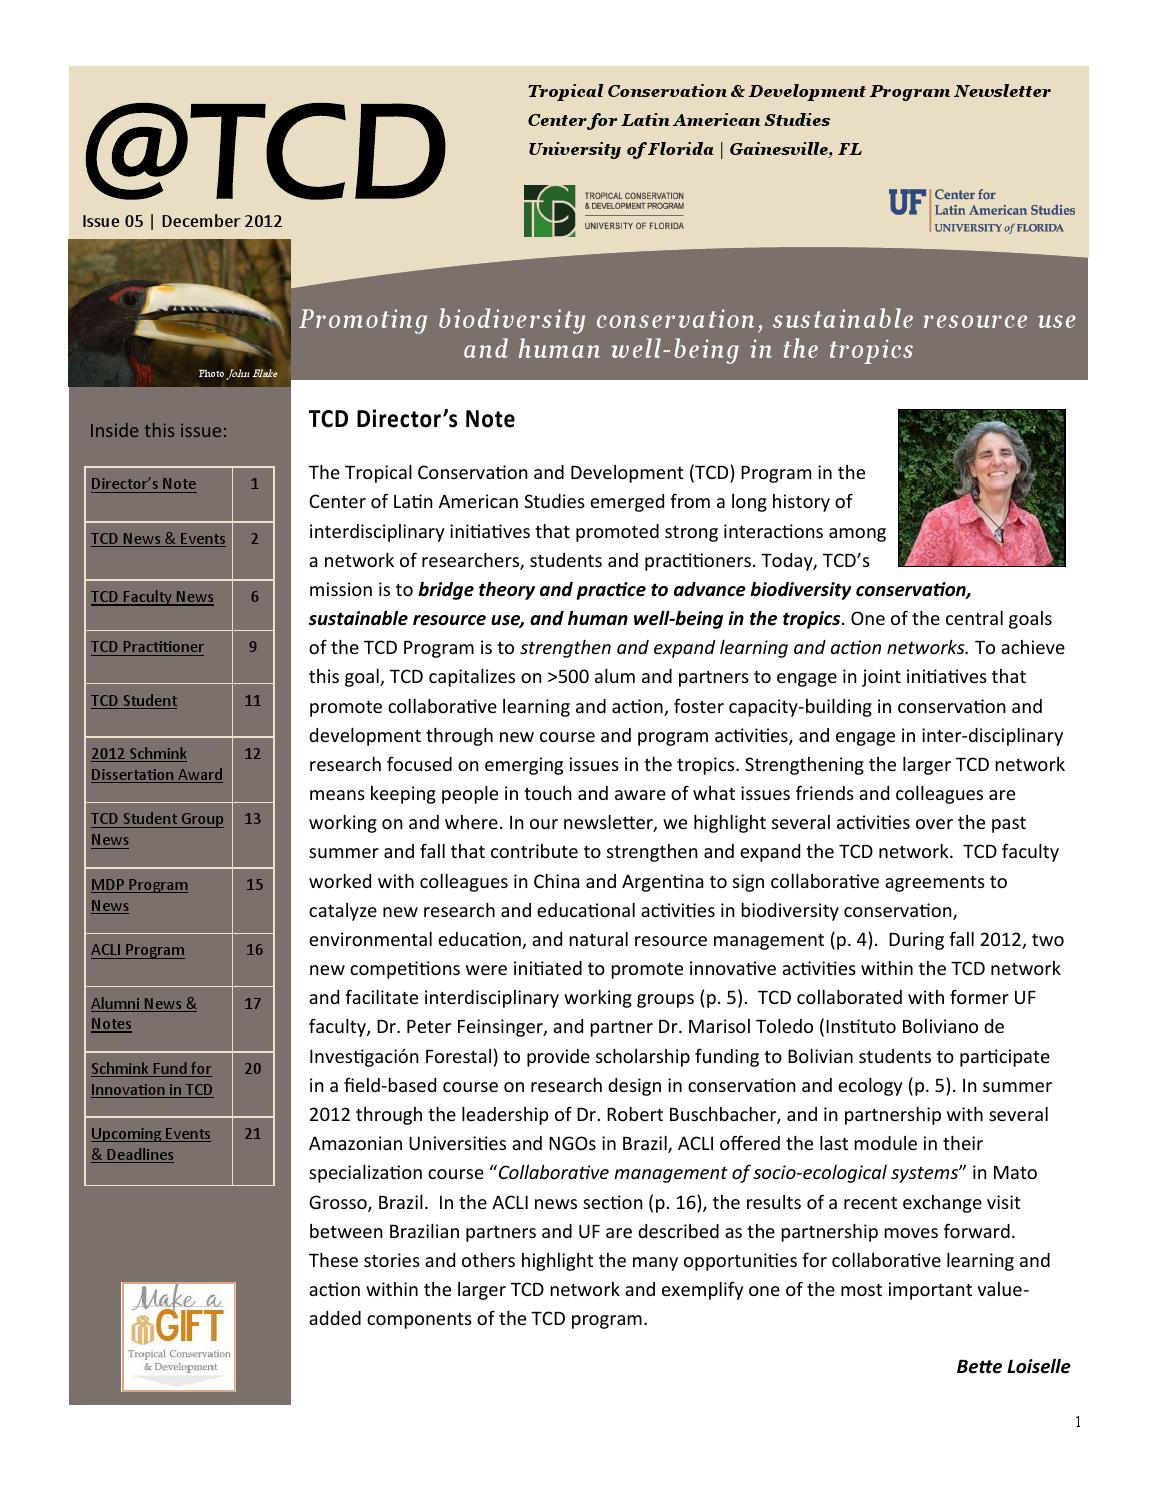 tcd university of florida by ecología y conservación ECUADOR - issuu